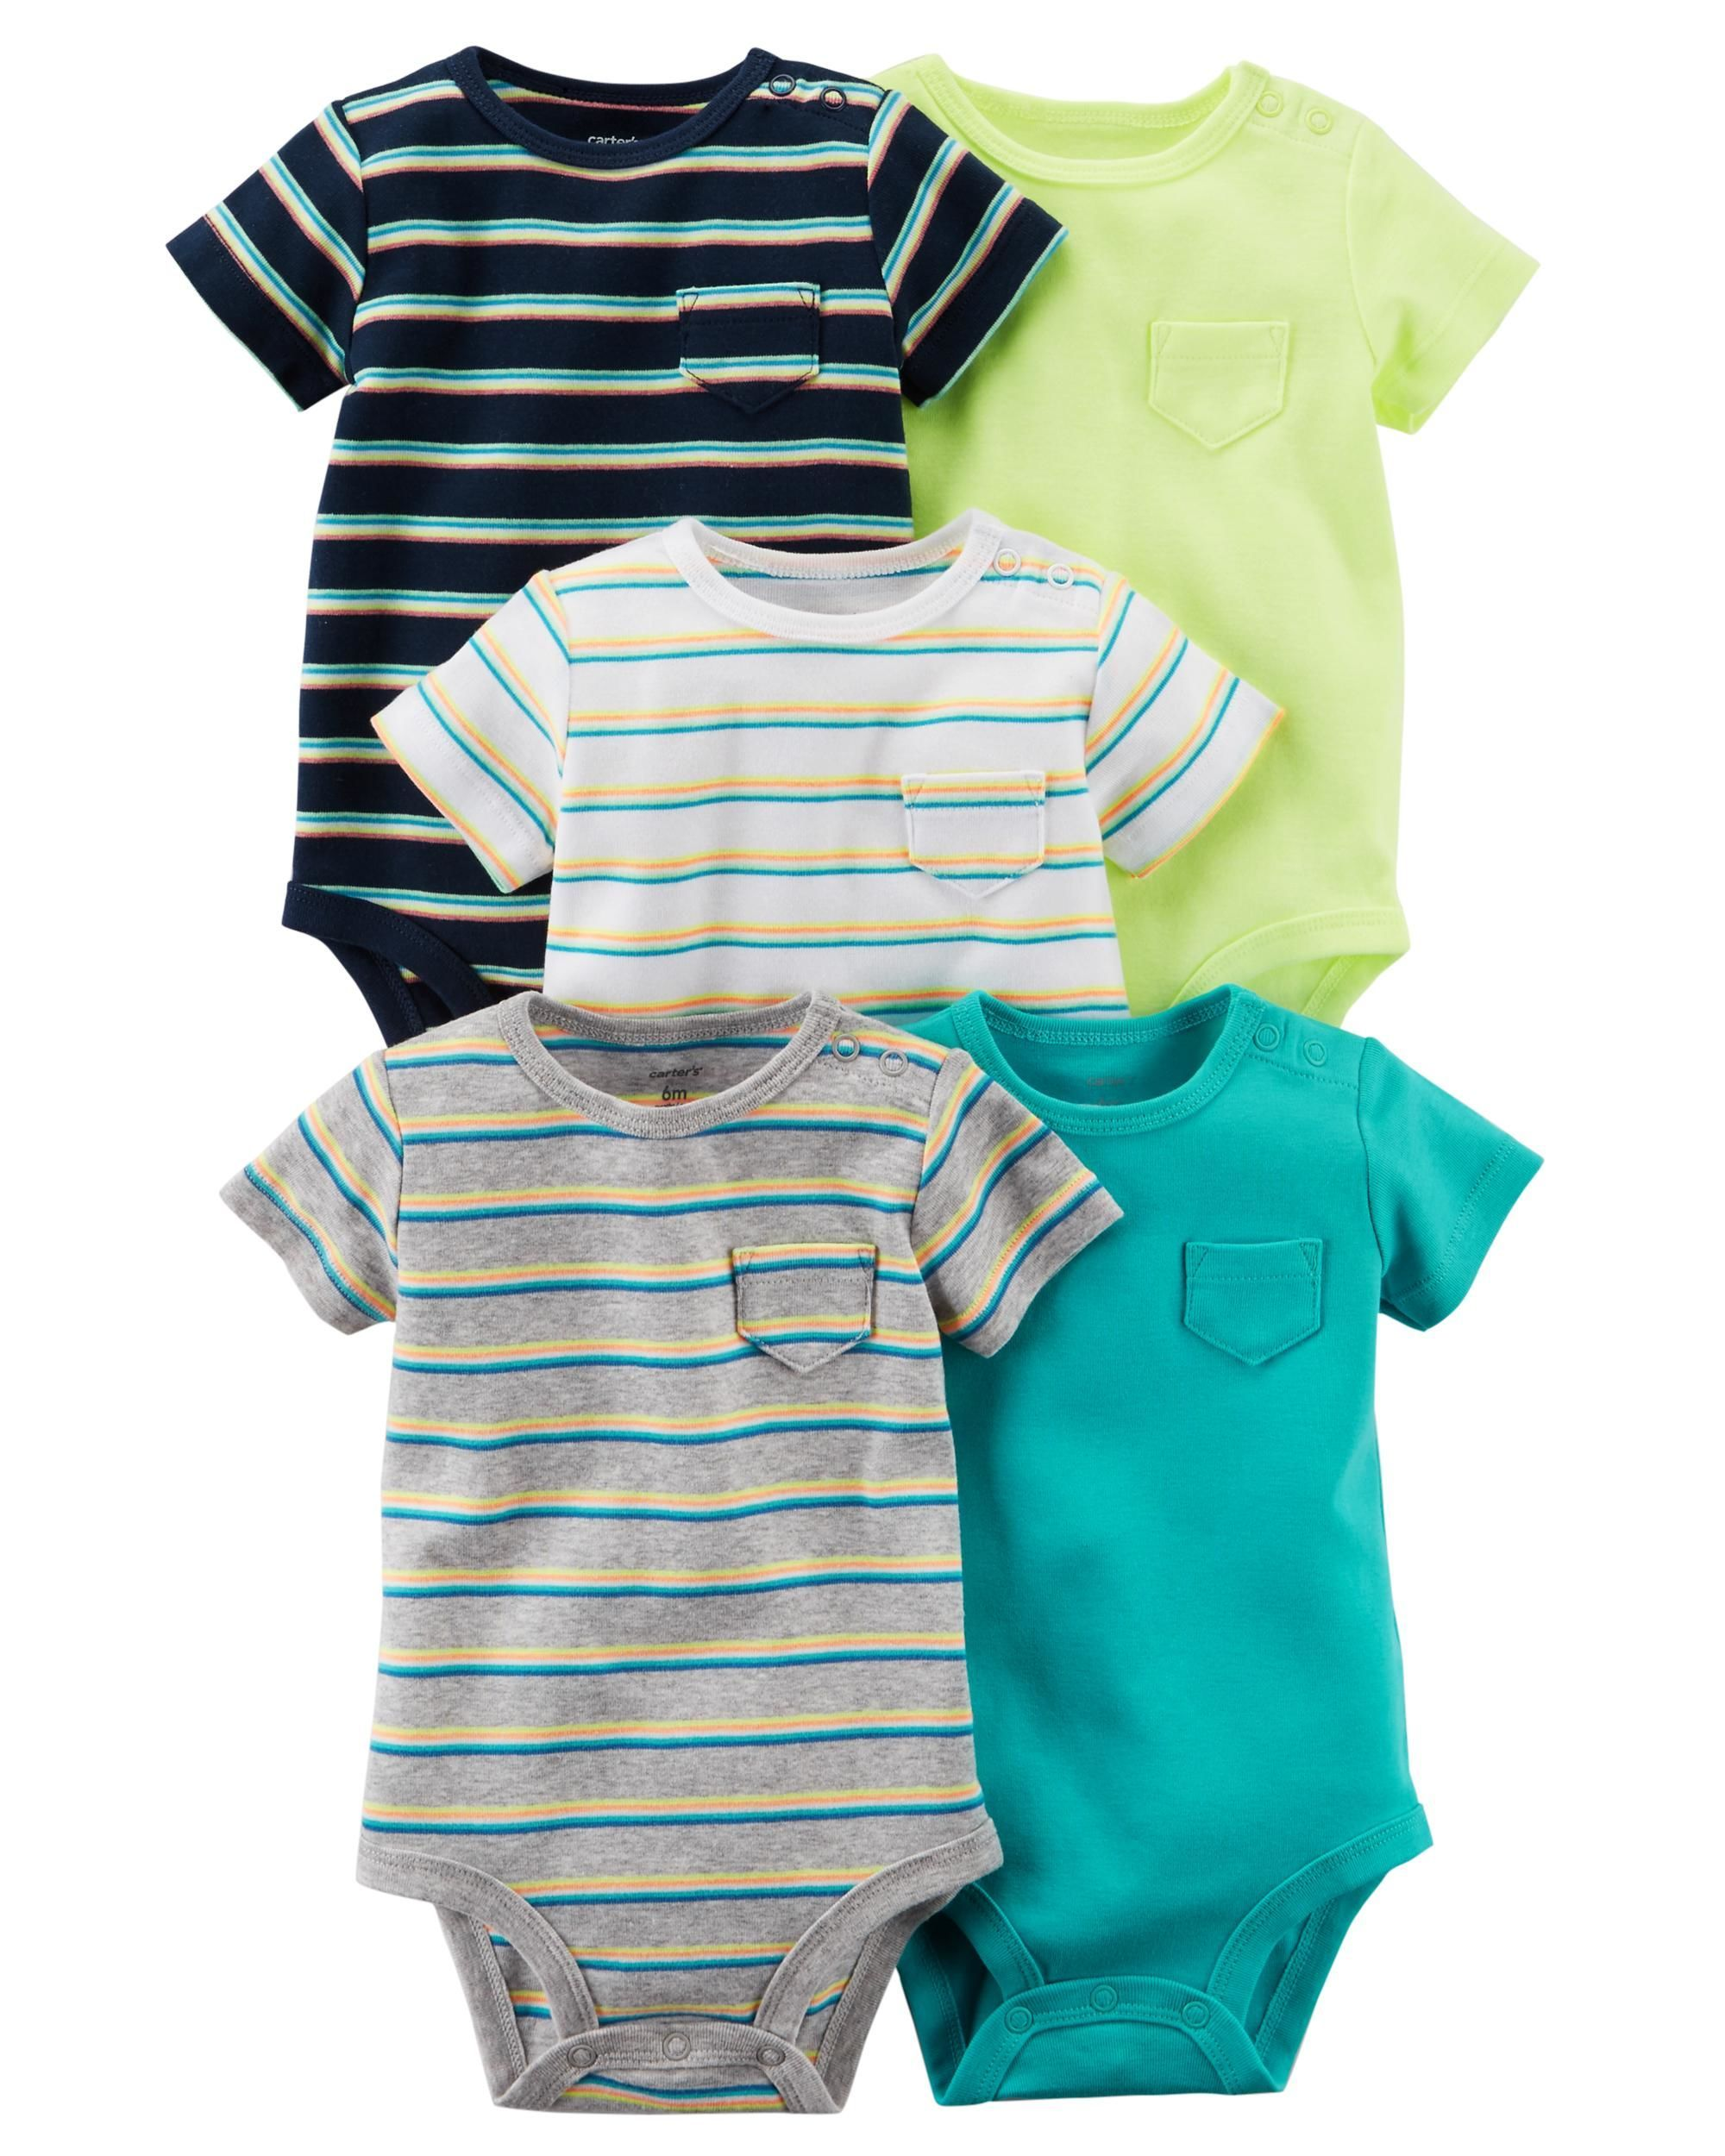 Carters Infant Boys 4-Pack Long-Sleeve Bodysuits Solid Colors NWT snap shirts